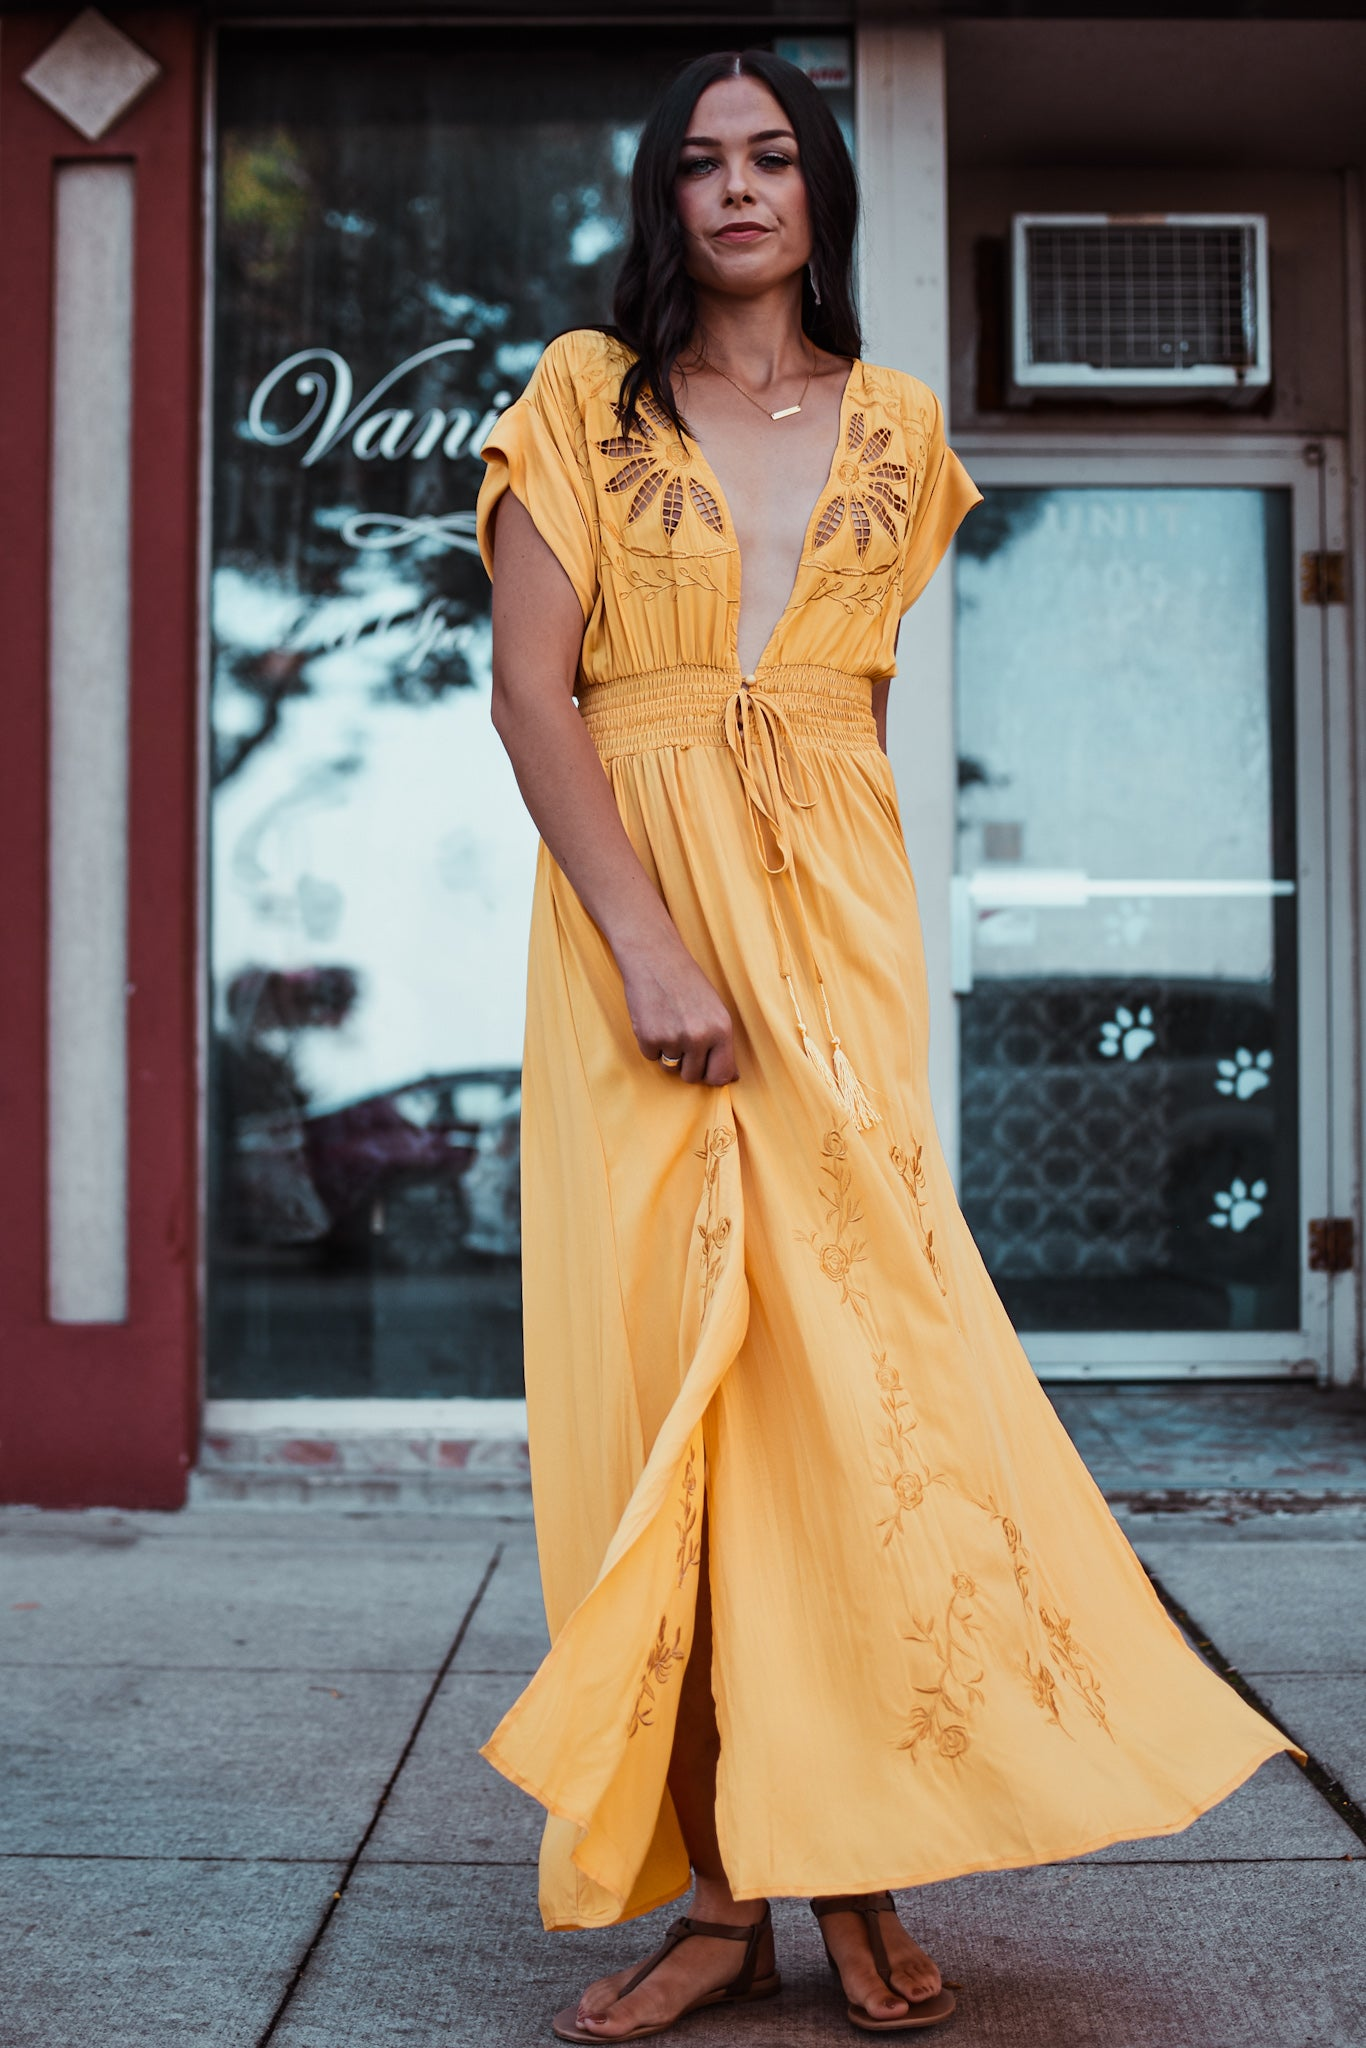 Hot September Embroidered Maxi Dress in Mustard Yellow